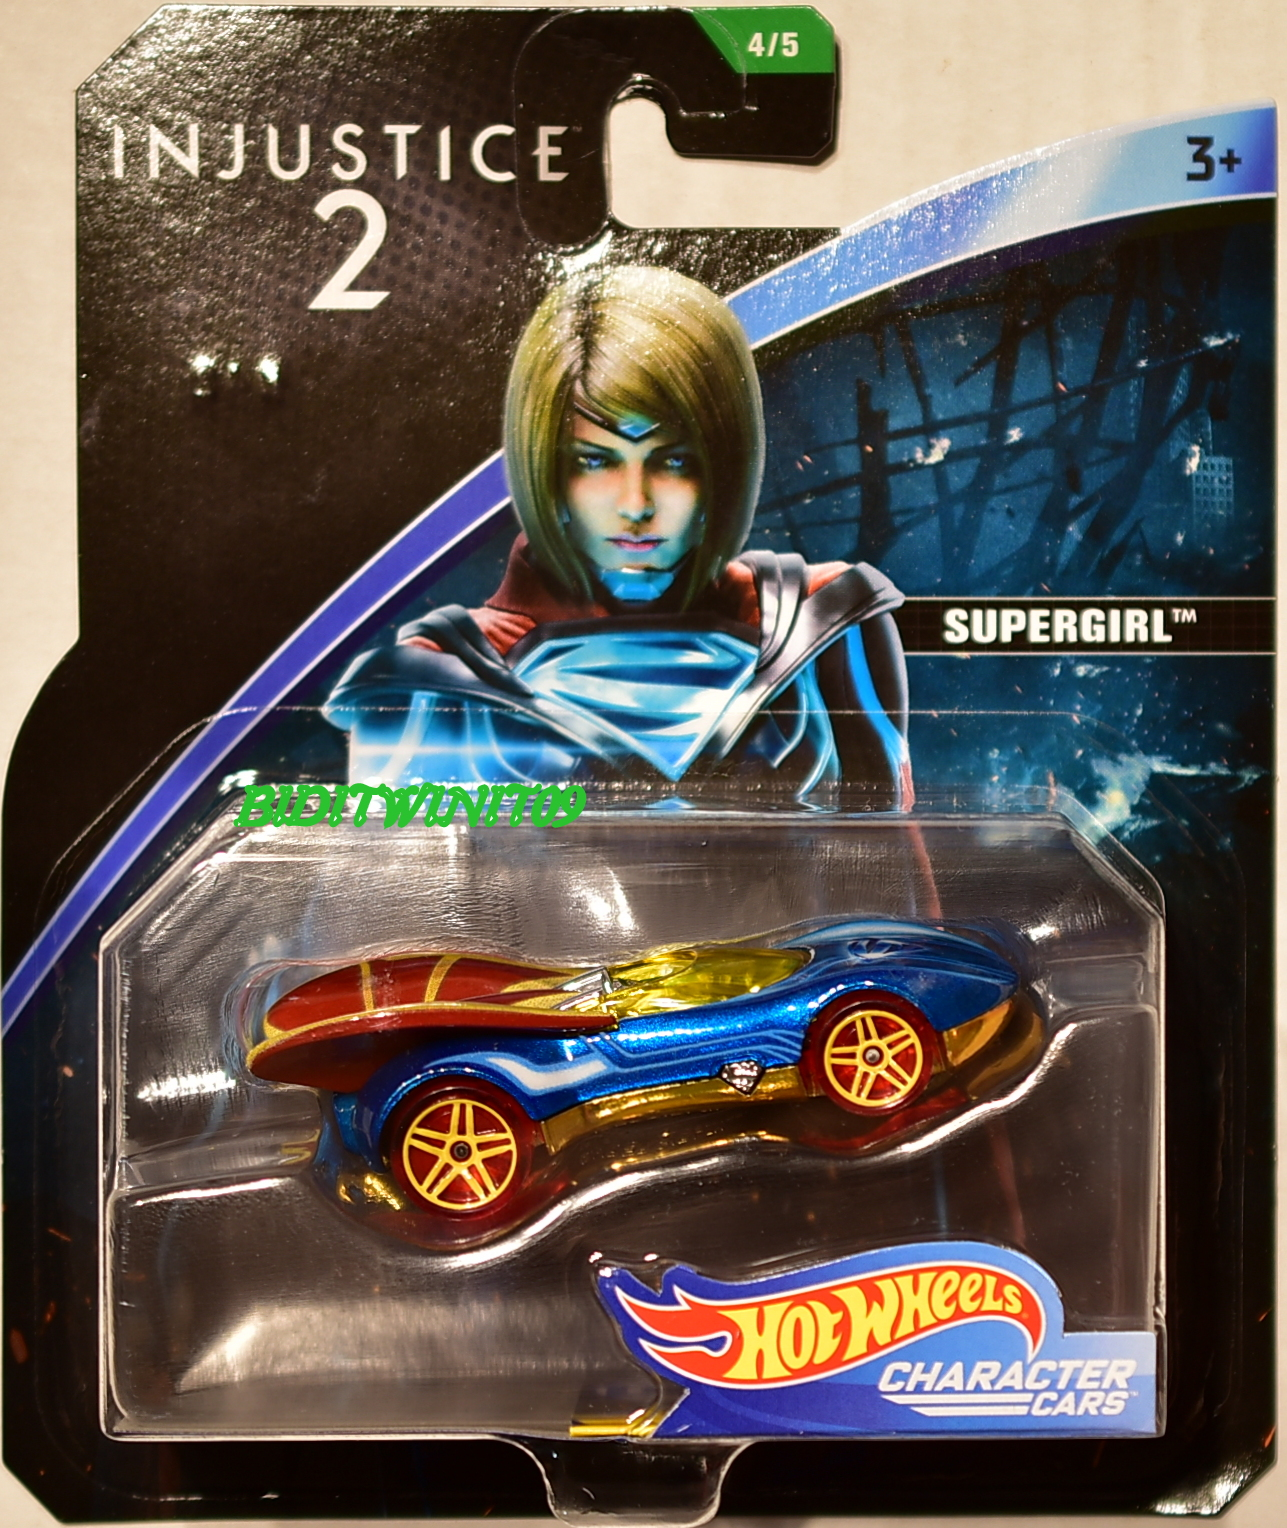 HOT WHEELS 2018 DC COMICS INJUSTICE 2 SUPERGIRL CHARACTER CARS